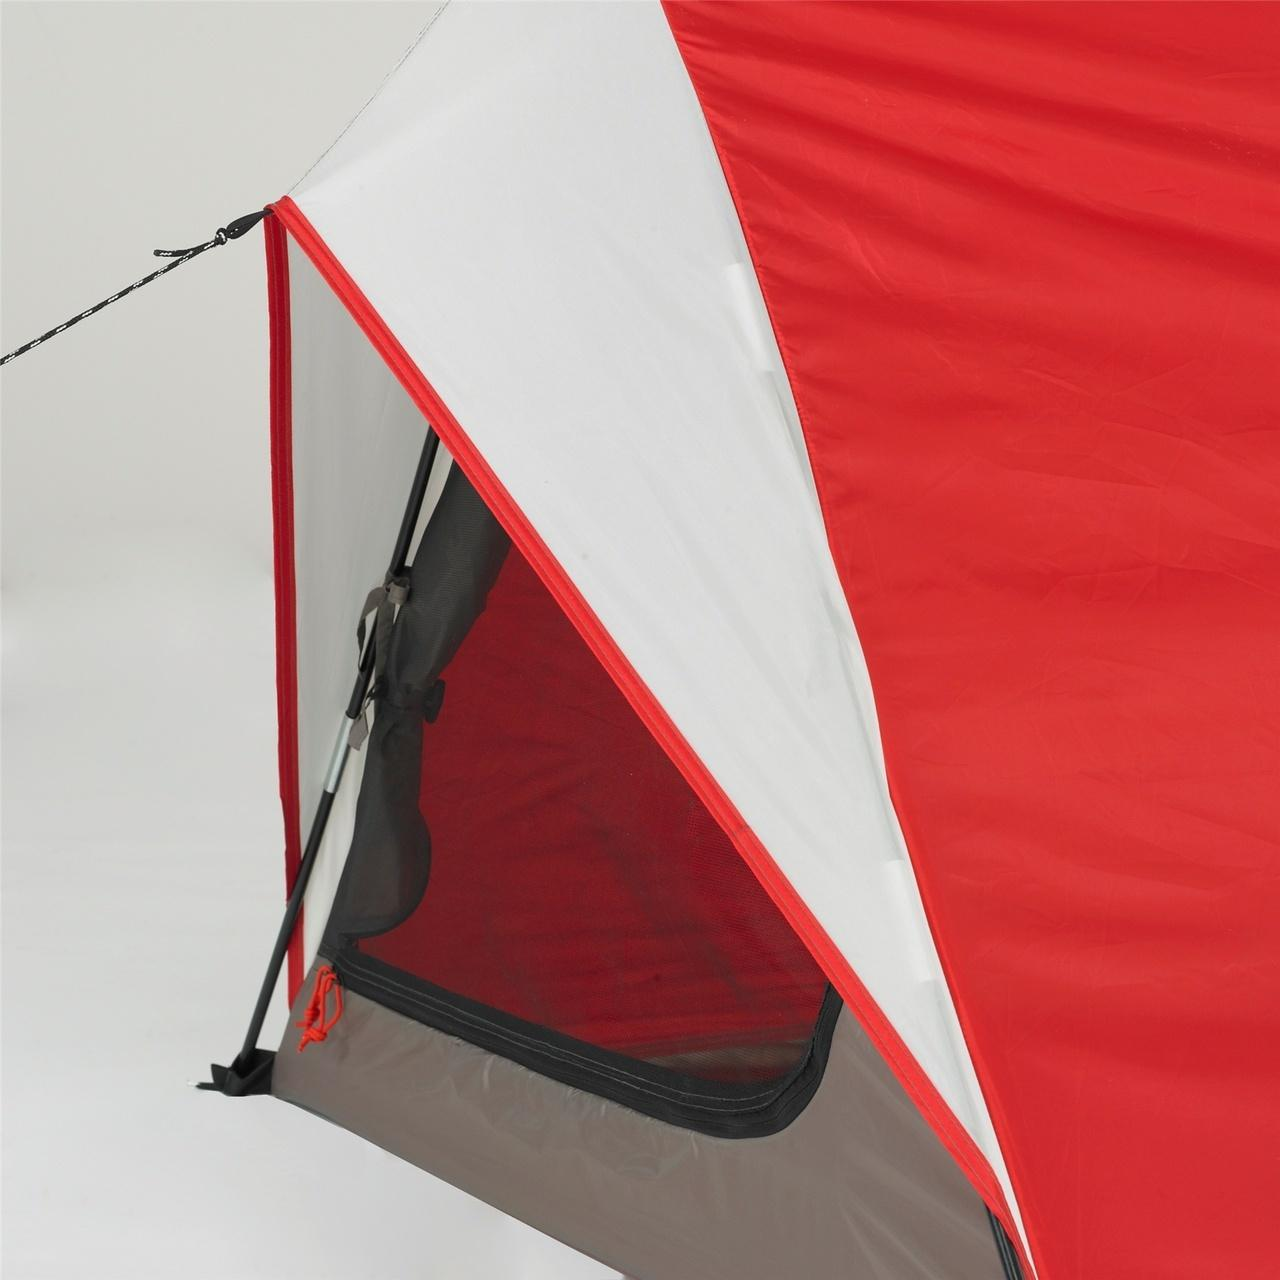 American Rec Wenzel Starlite 1 Person Tent (Red) - 36 inches height - dependable emergency fiberglass tent. Floor material welded polyester. & American Rec Wenzel Starlite 1 Person Tent (Red) - 36 inches height ...